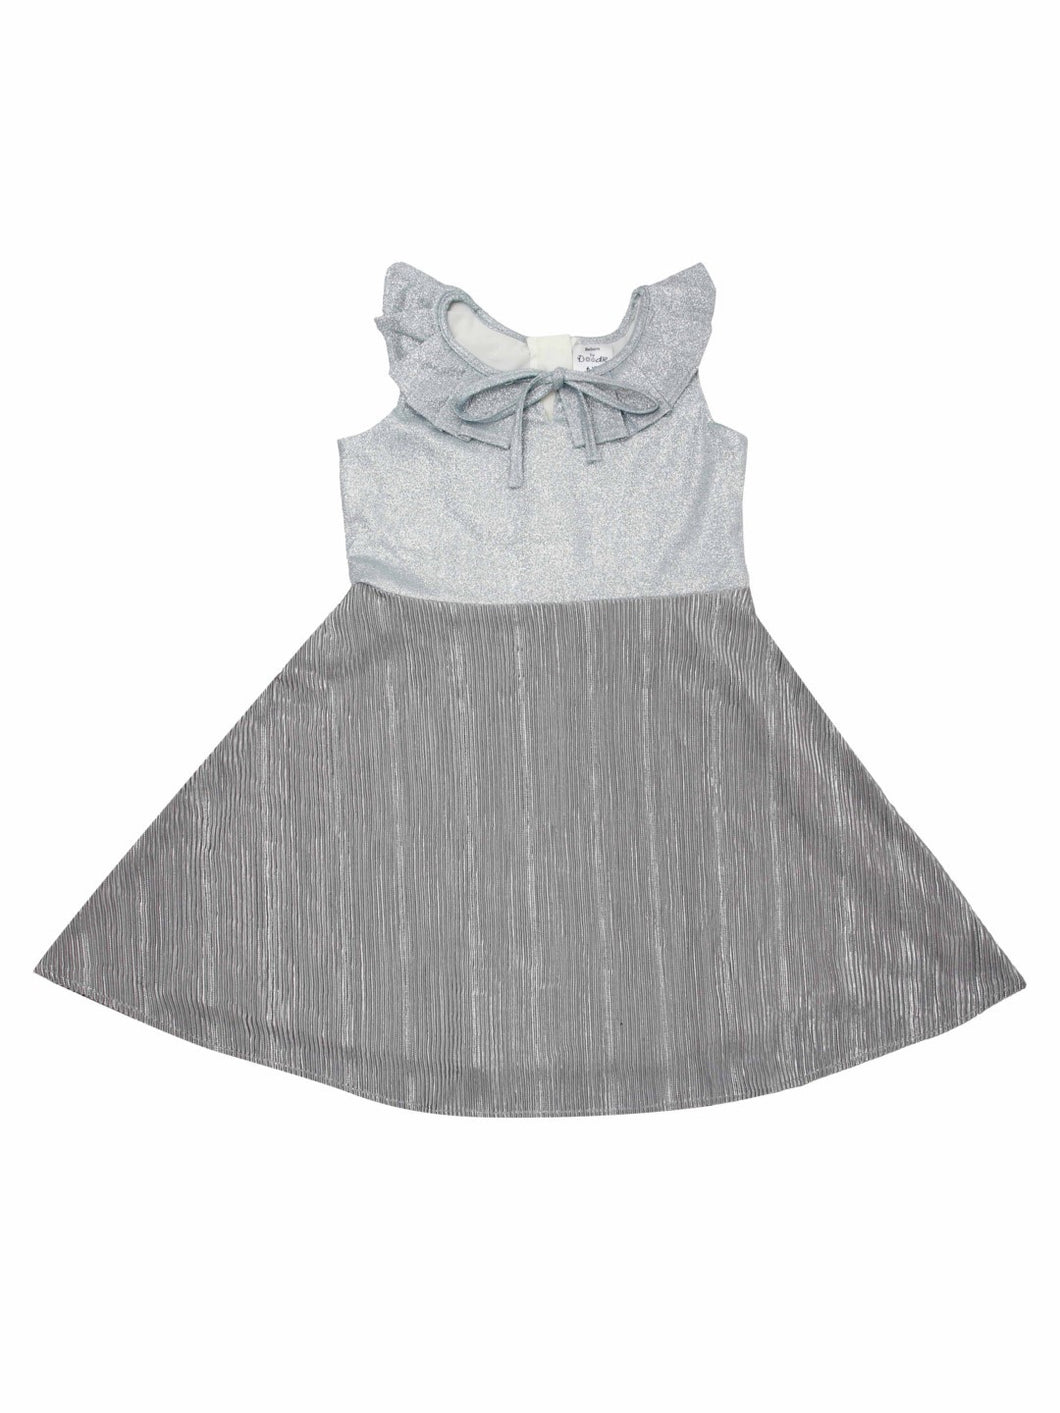 Grey Shimmer Sleeveless Ruffle Dress With Tie Up